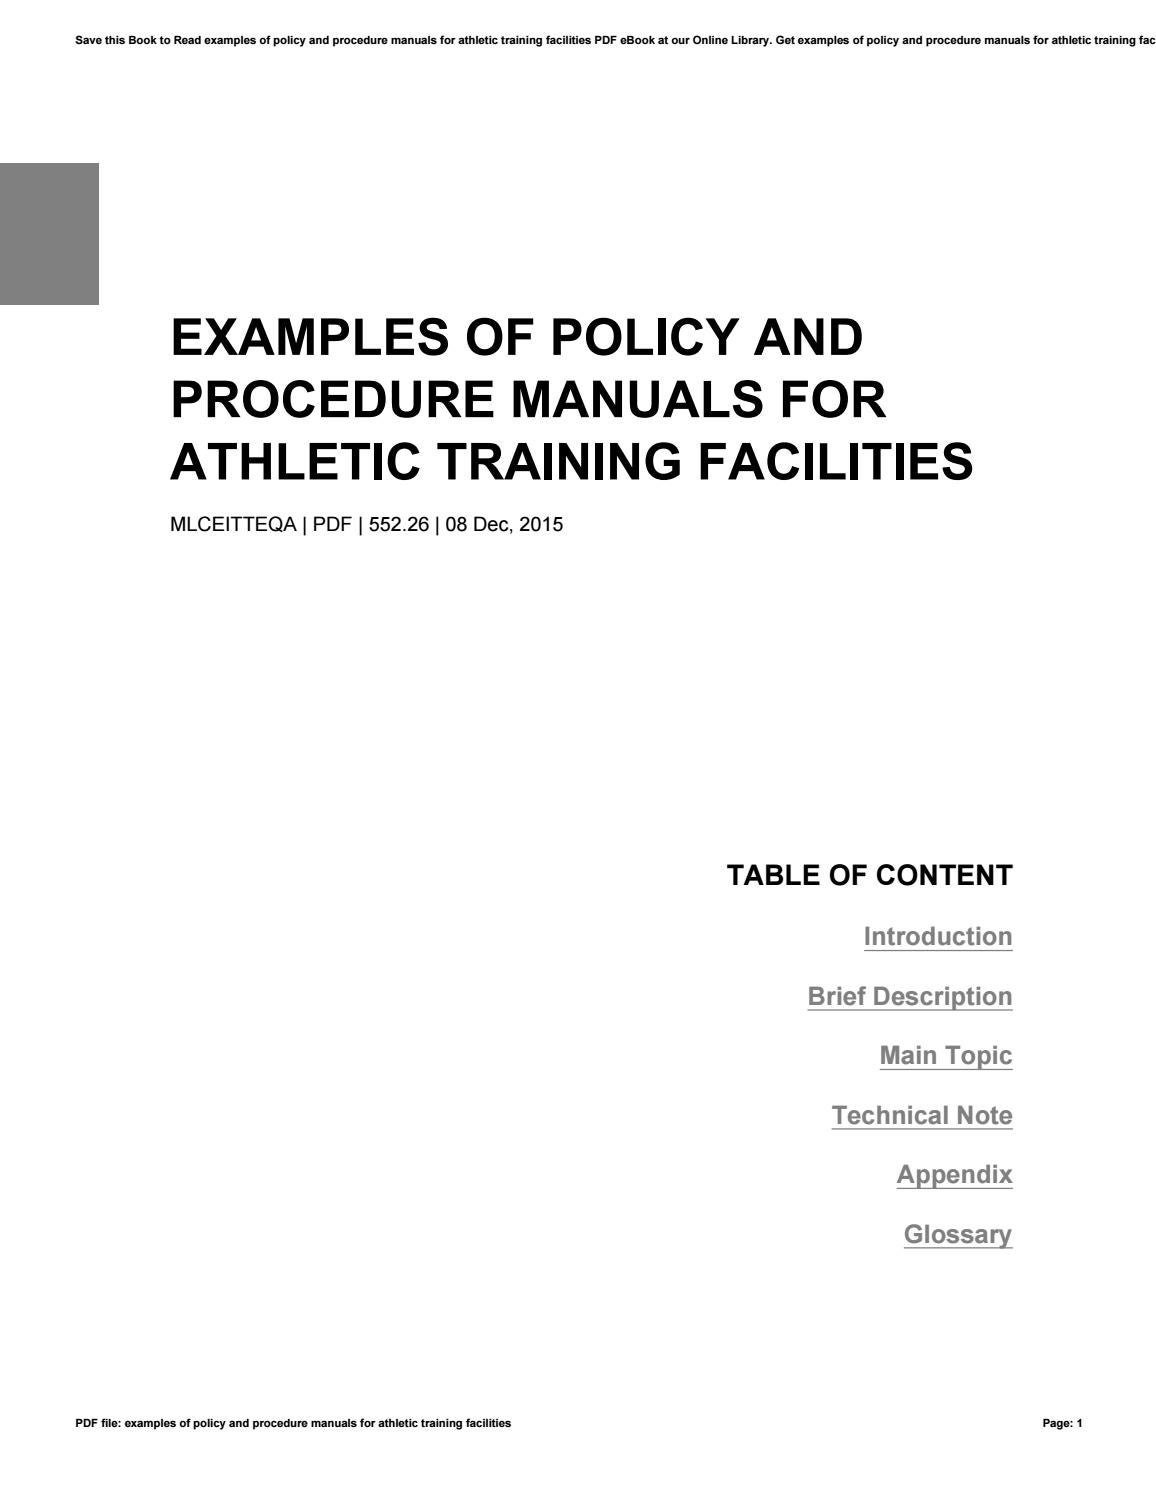 Examples of policy and procedure manuals for athletic